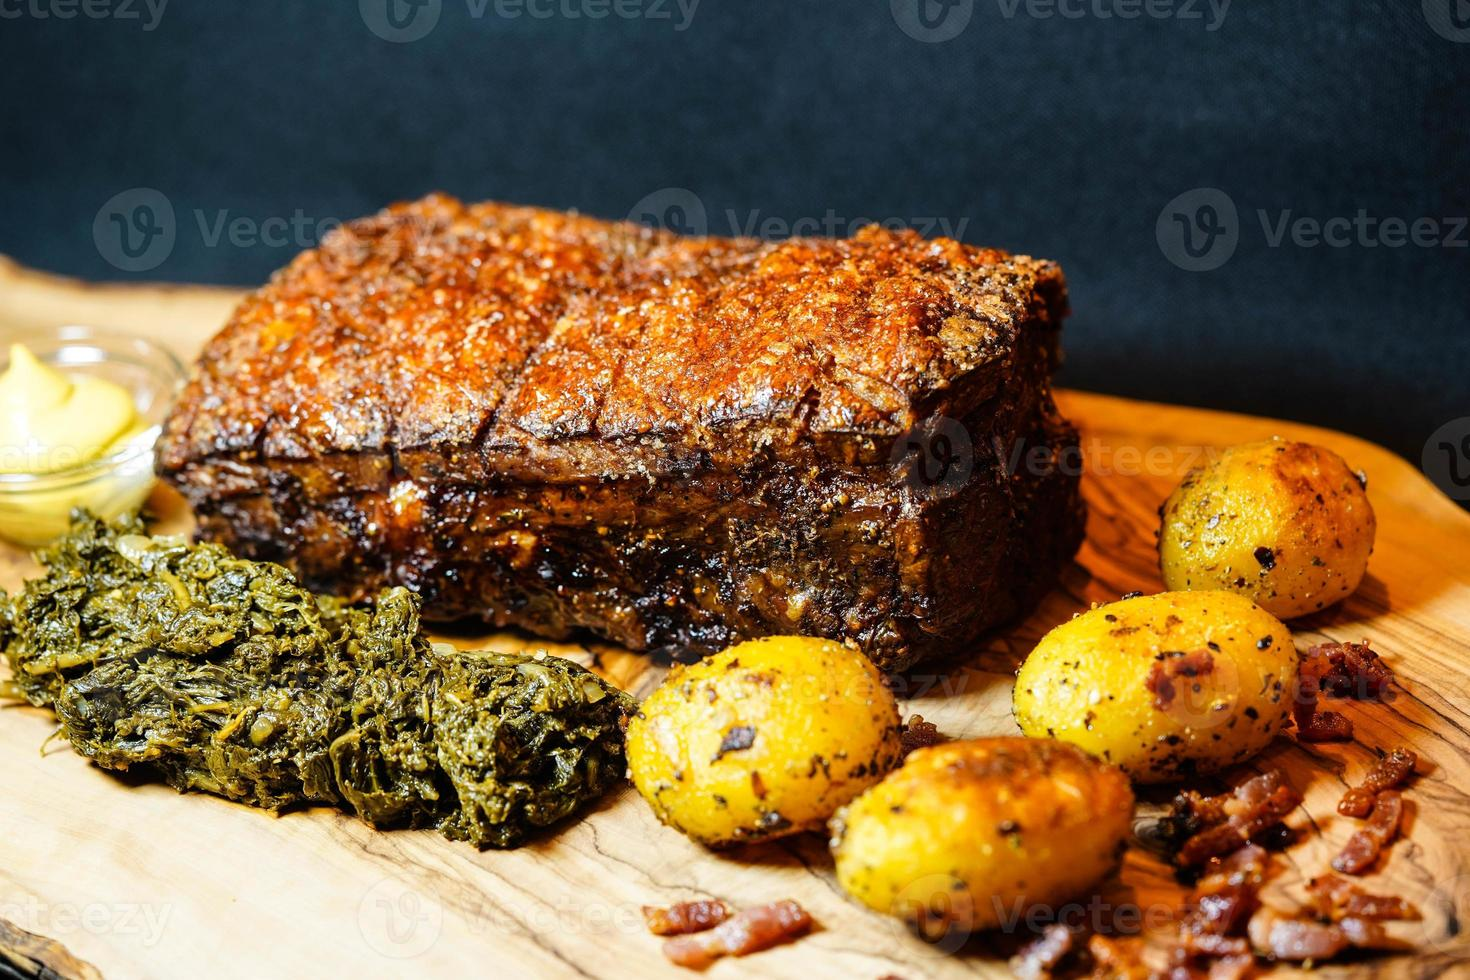 Pork royal and curly kale on olive wood photo